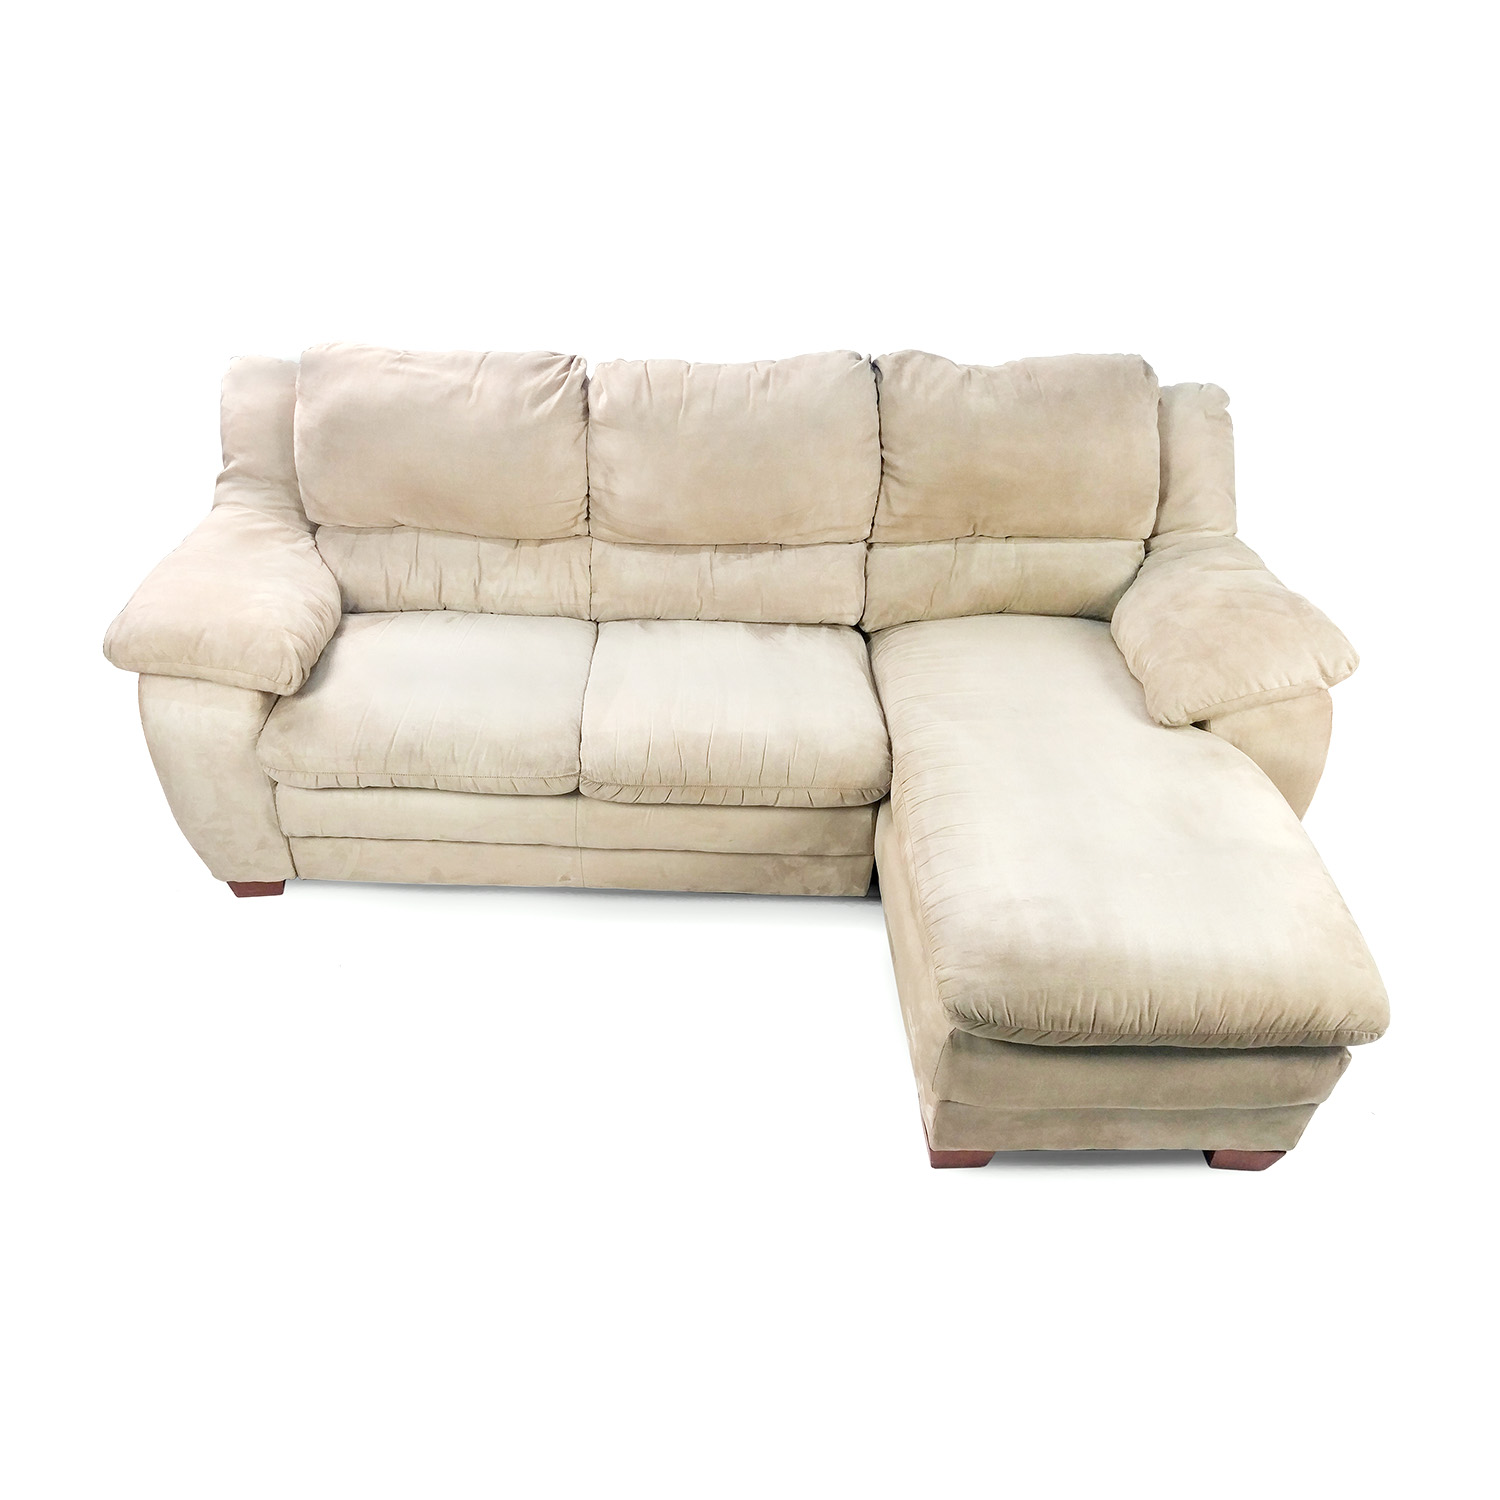 Jennifer convertibles microfiber sectional sofa refil sofa for Sectional sofa jennifer convertible